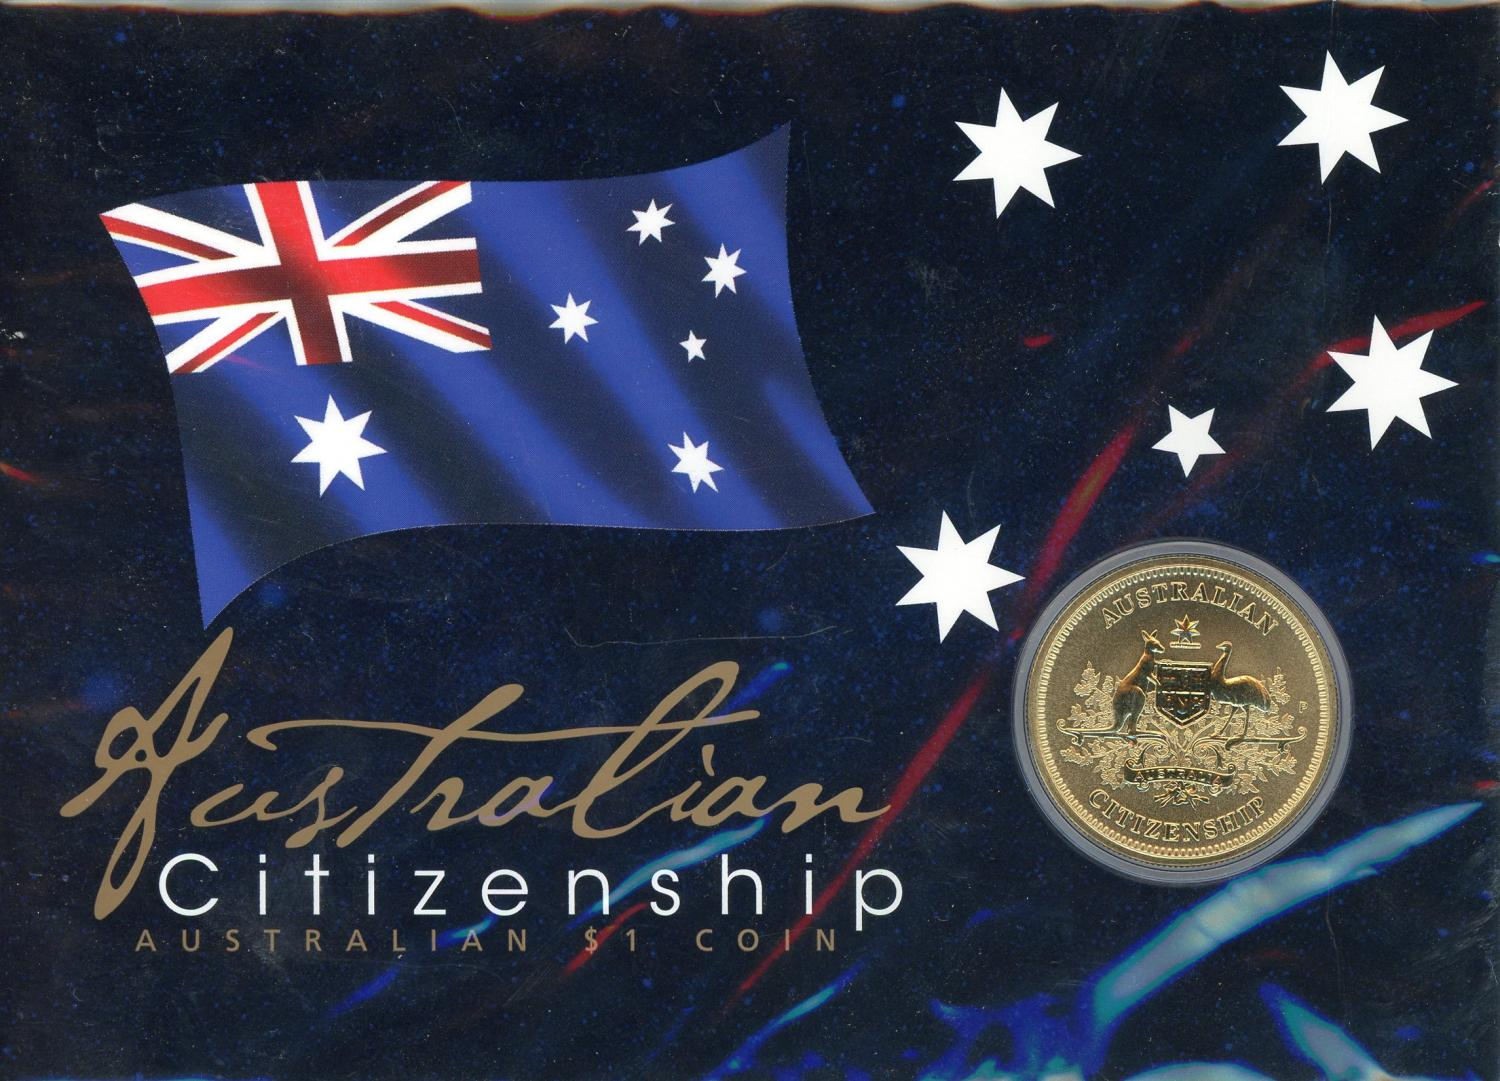 Thumbnail for 2018 Australian $1 Coin - Australian Citizenship P Mintmark